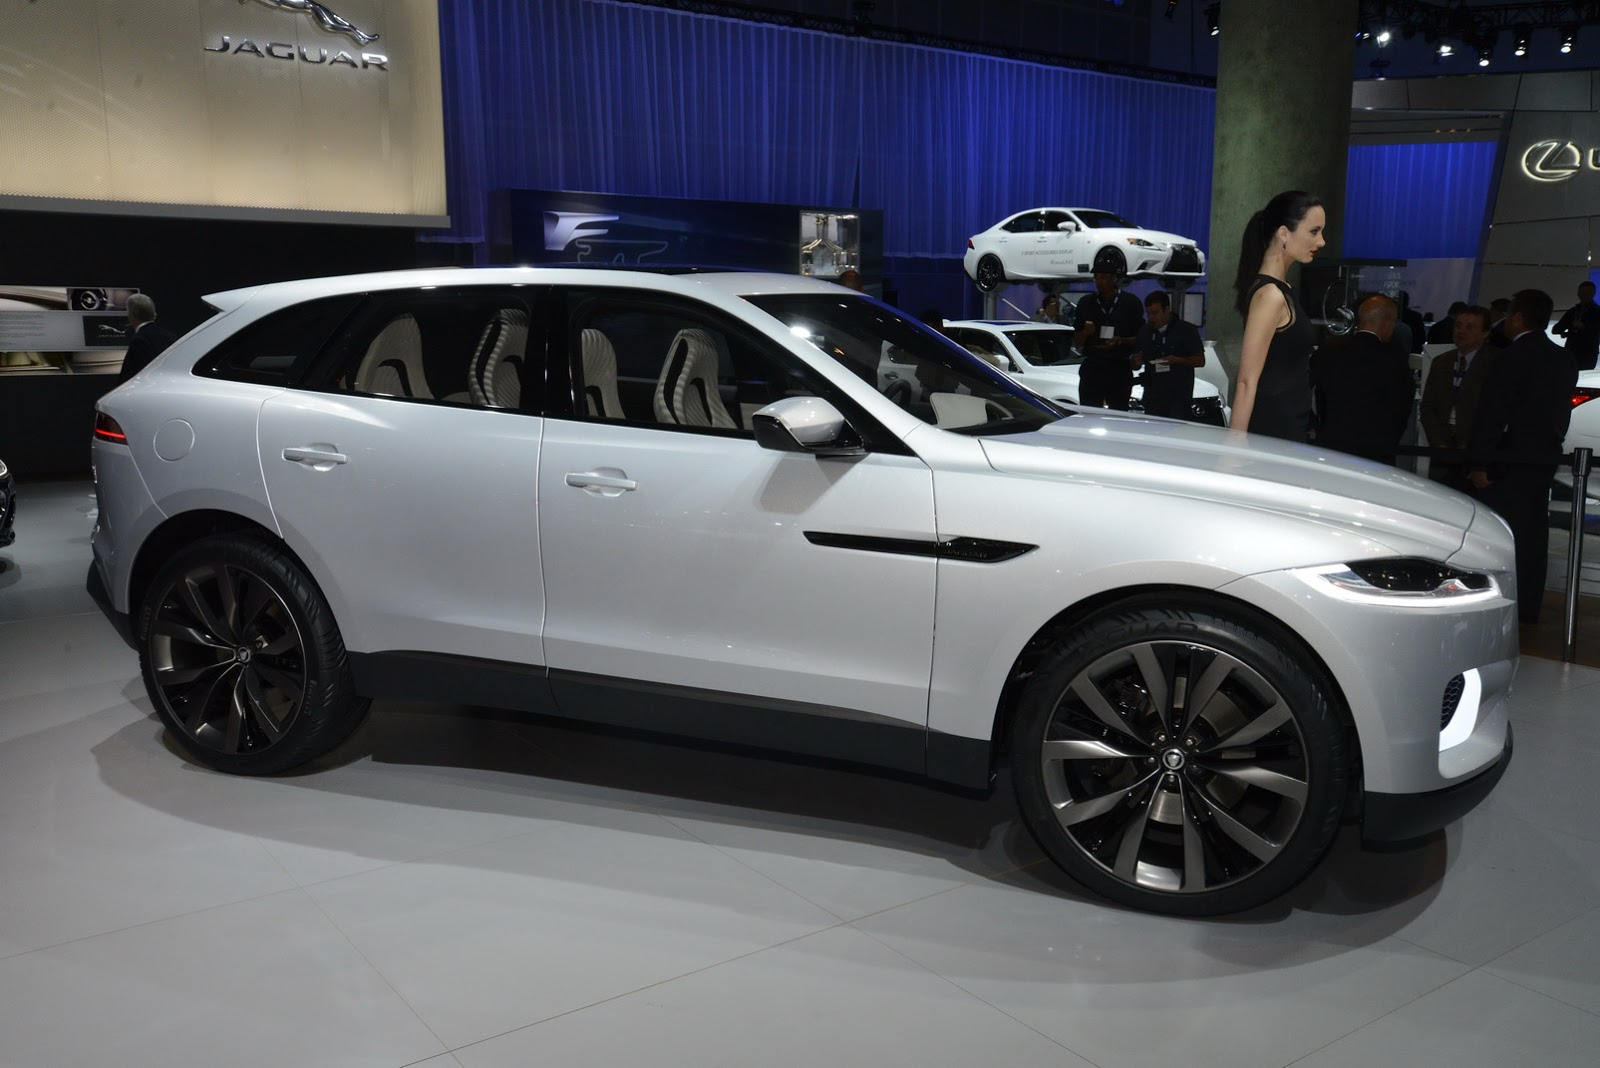 here 39 s proof that jaguar 39 s new f pace cuv looks just like the c x17 concept carscoops. Black Bedroom Furniture Sets. Home Design Ideas